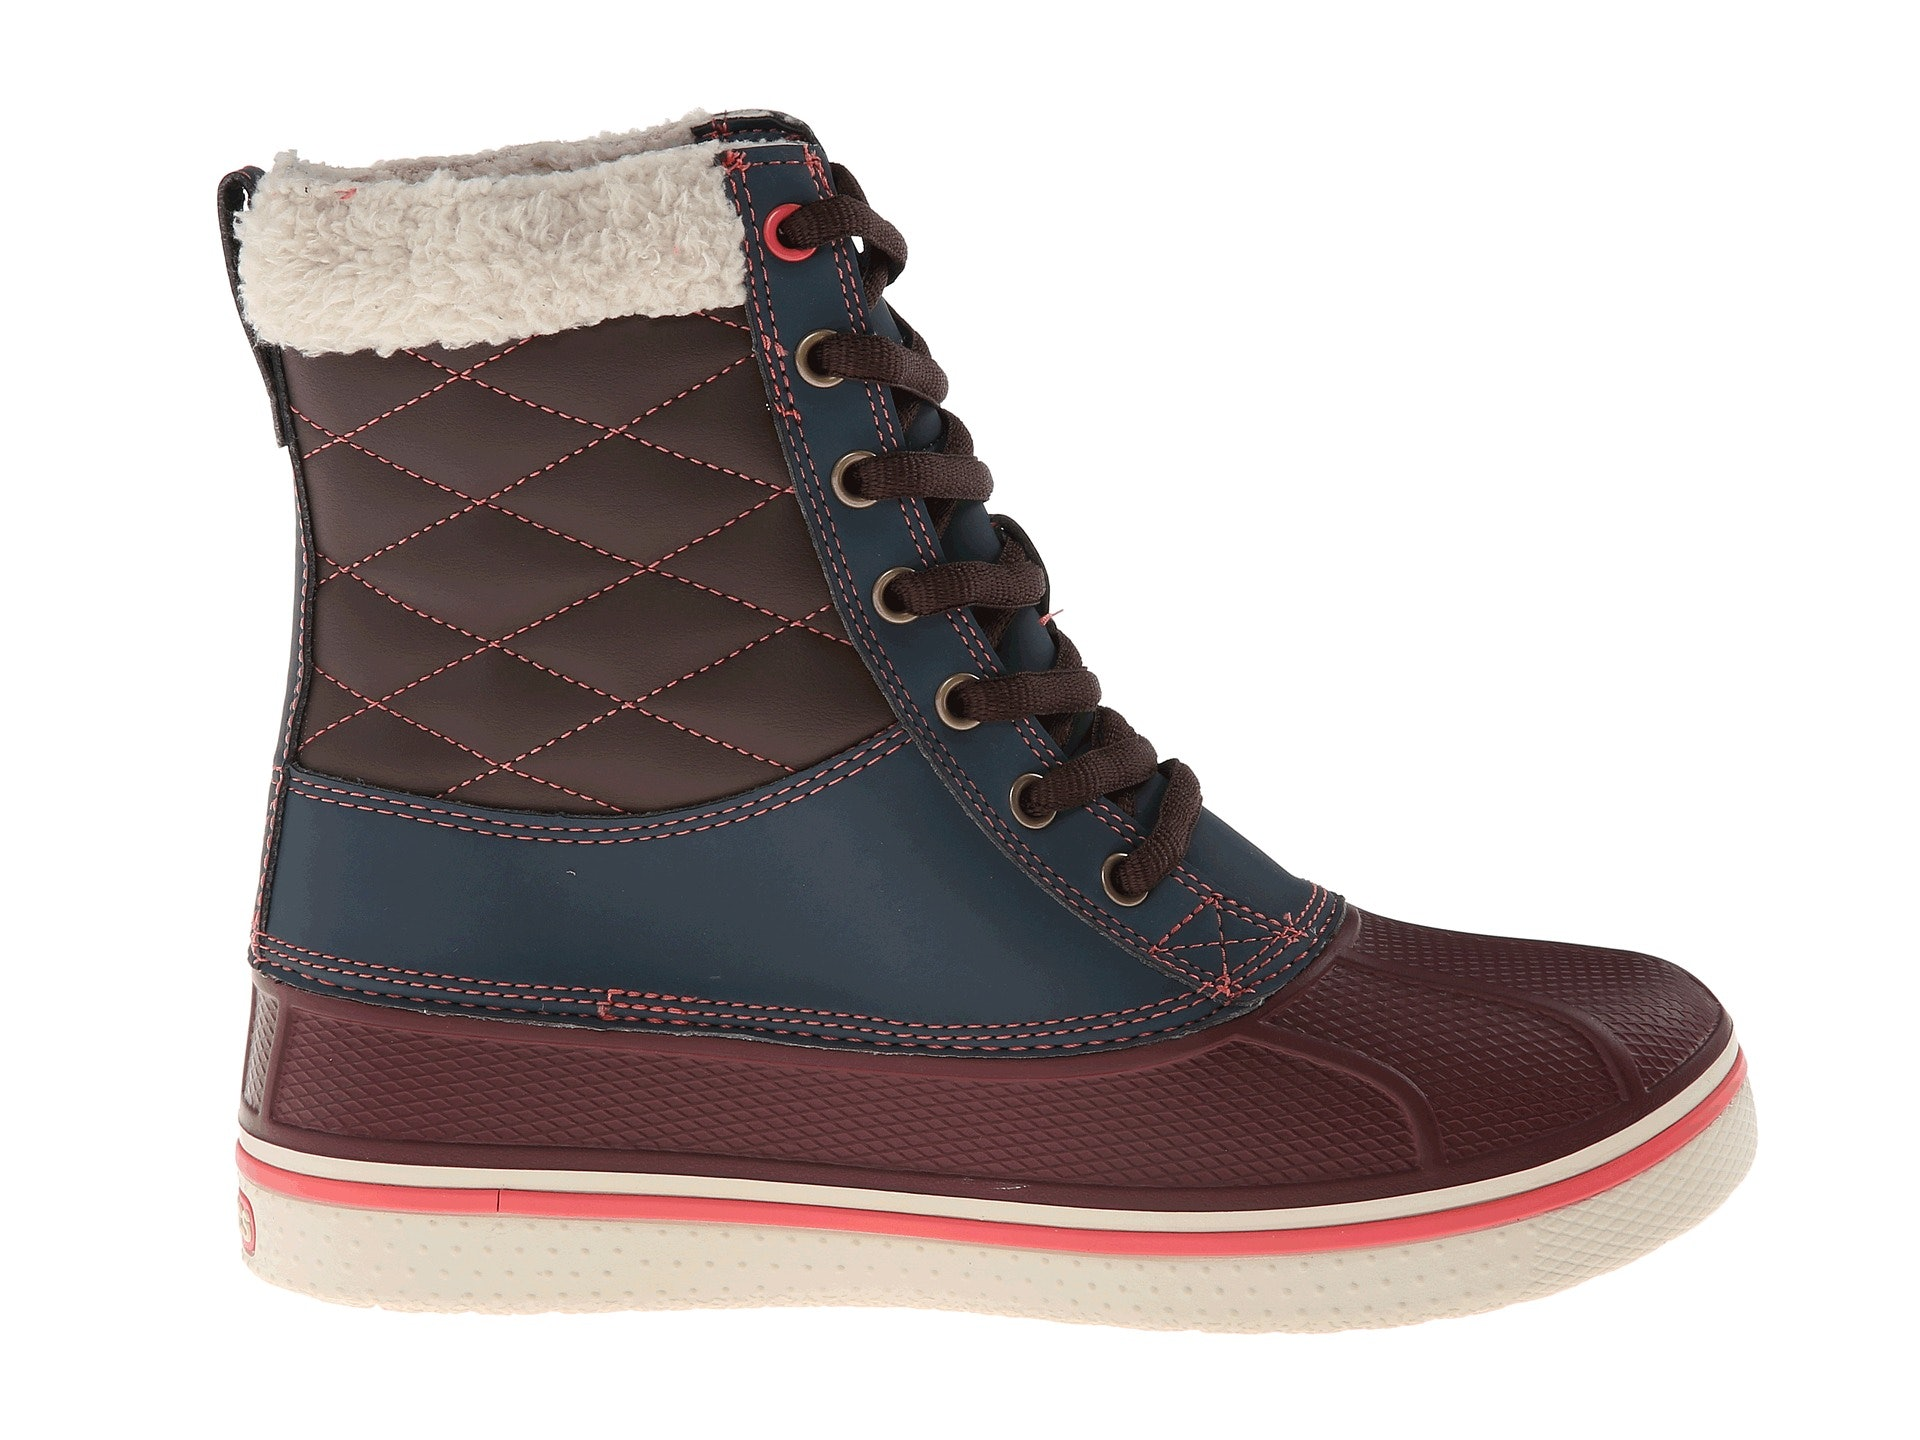 c3ff2fe4dff Where To Buy Bean Boots Look-Alikes Because The Real Ones Are ...